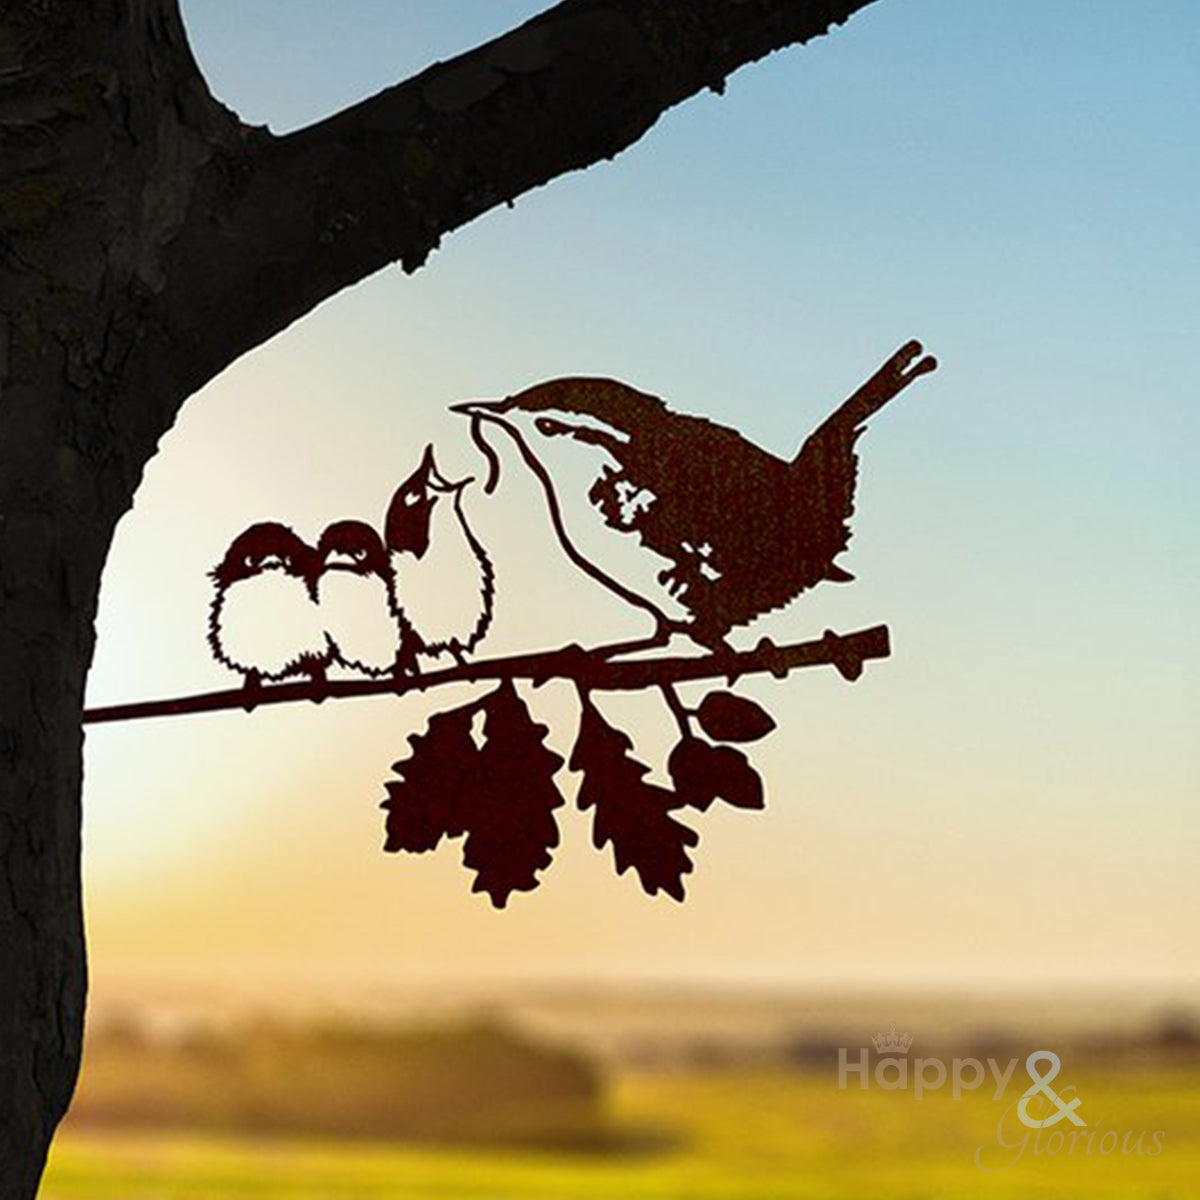 Steel wren & chicks silhouette garden art